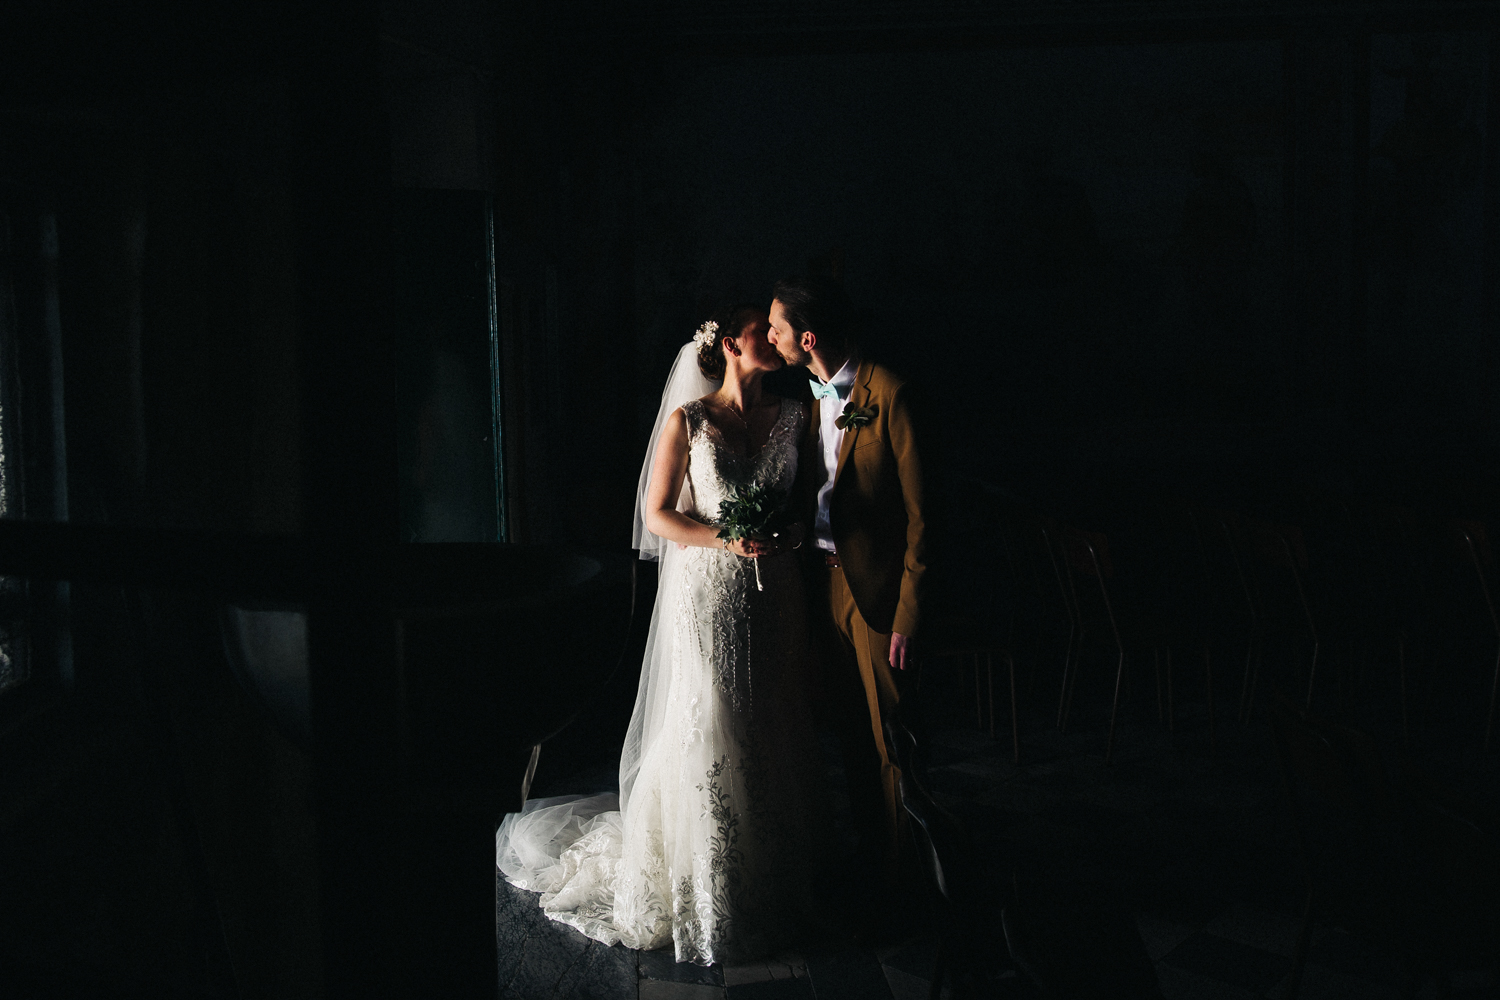 a bride and groom stand in the darkness, only them as illuminated by the light